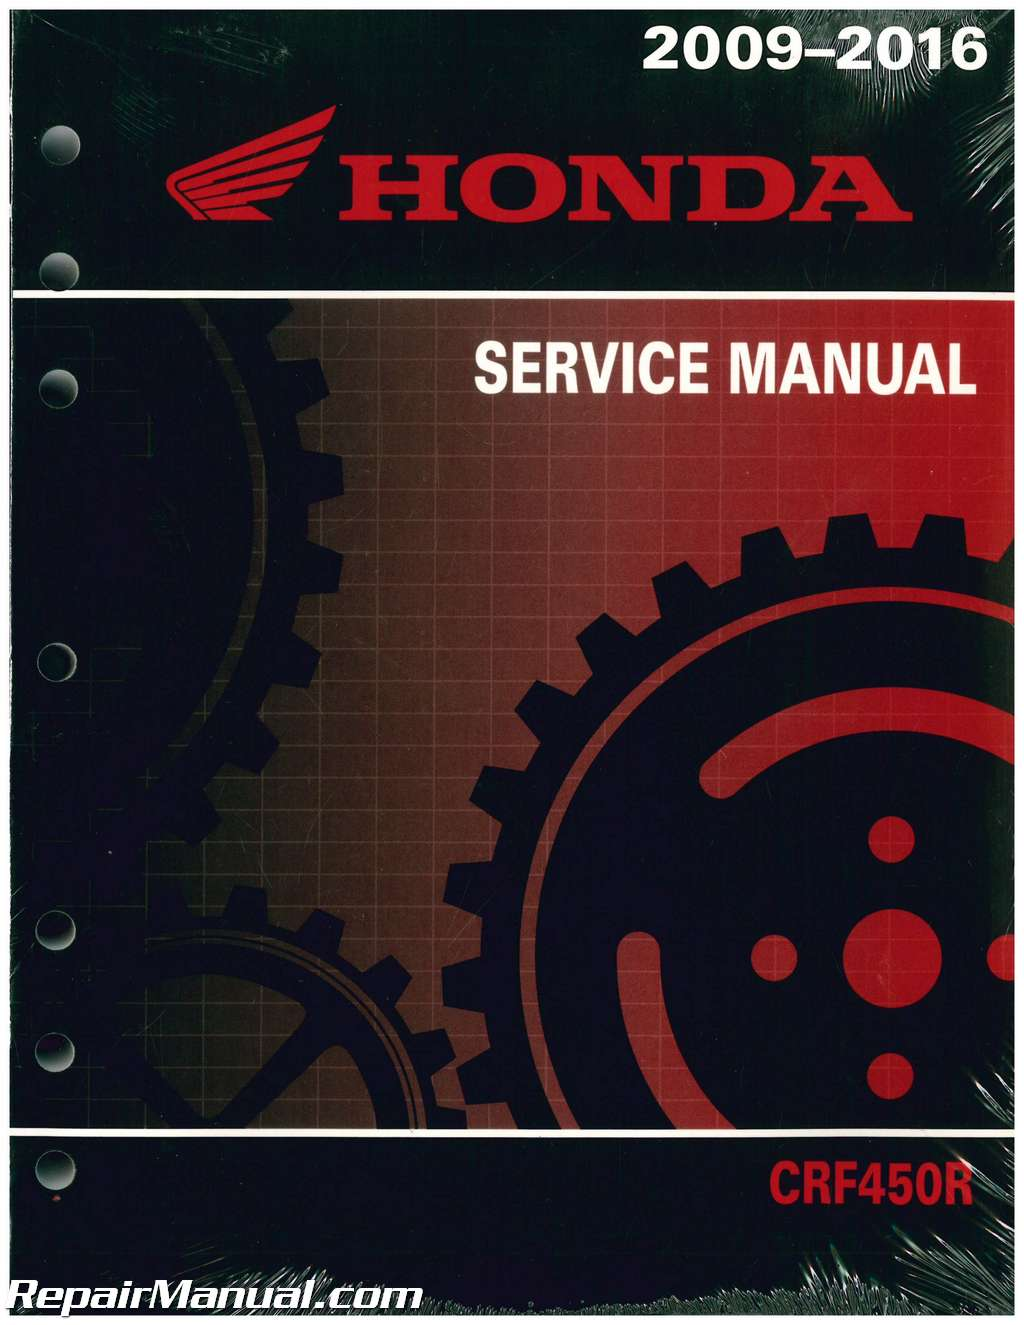 2009 2016 honda crf450r motorcycle service manual rh repairmanual com 2012 honda odyssey repair manual pdf download 2012 honda odyssey repair manual free